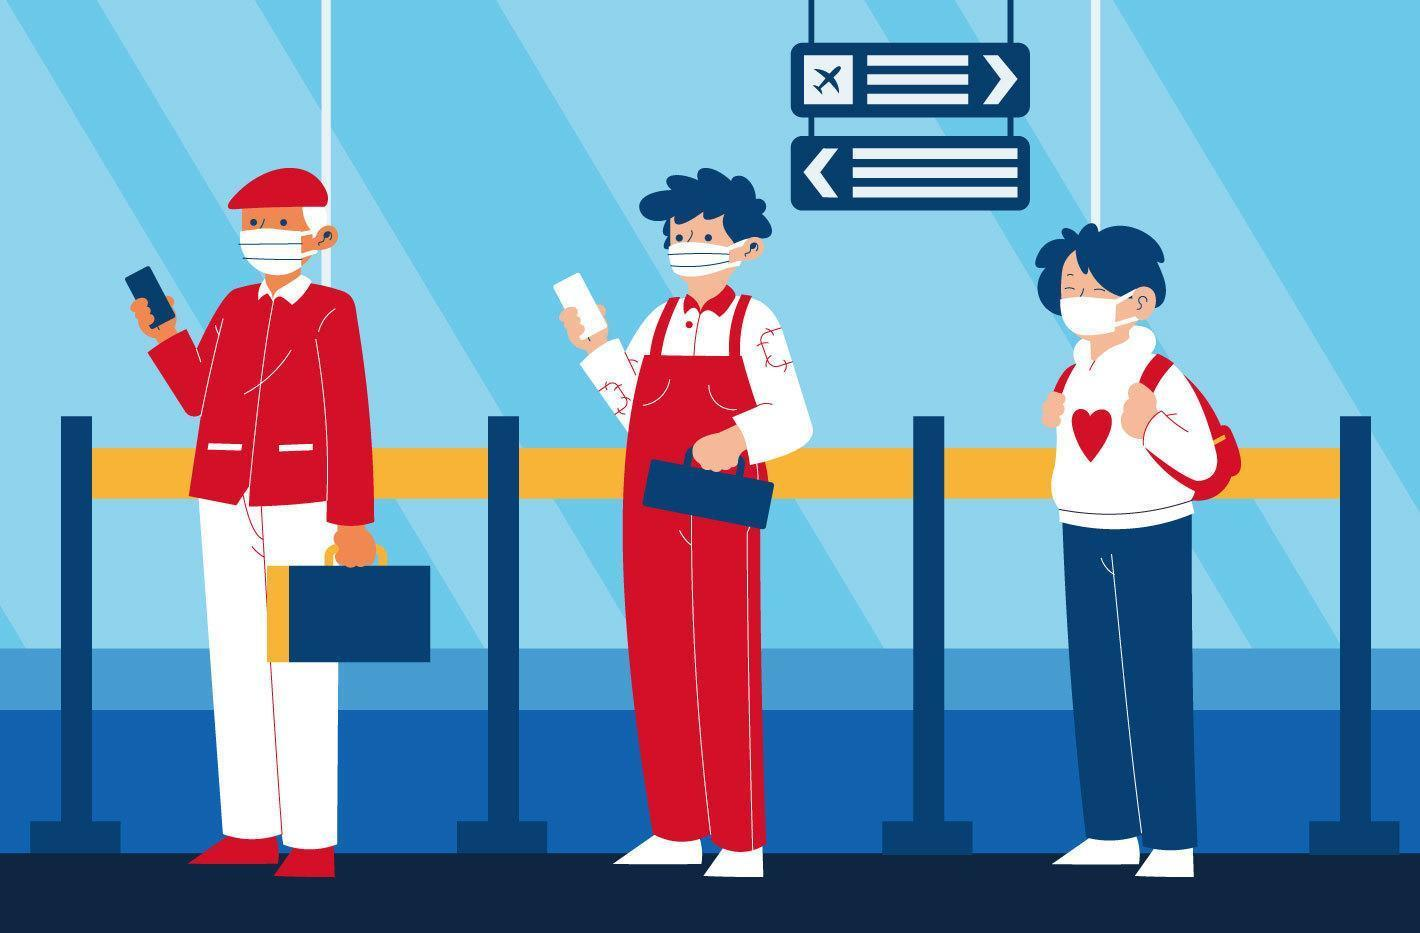 Social distancing concept with masked people in line vector